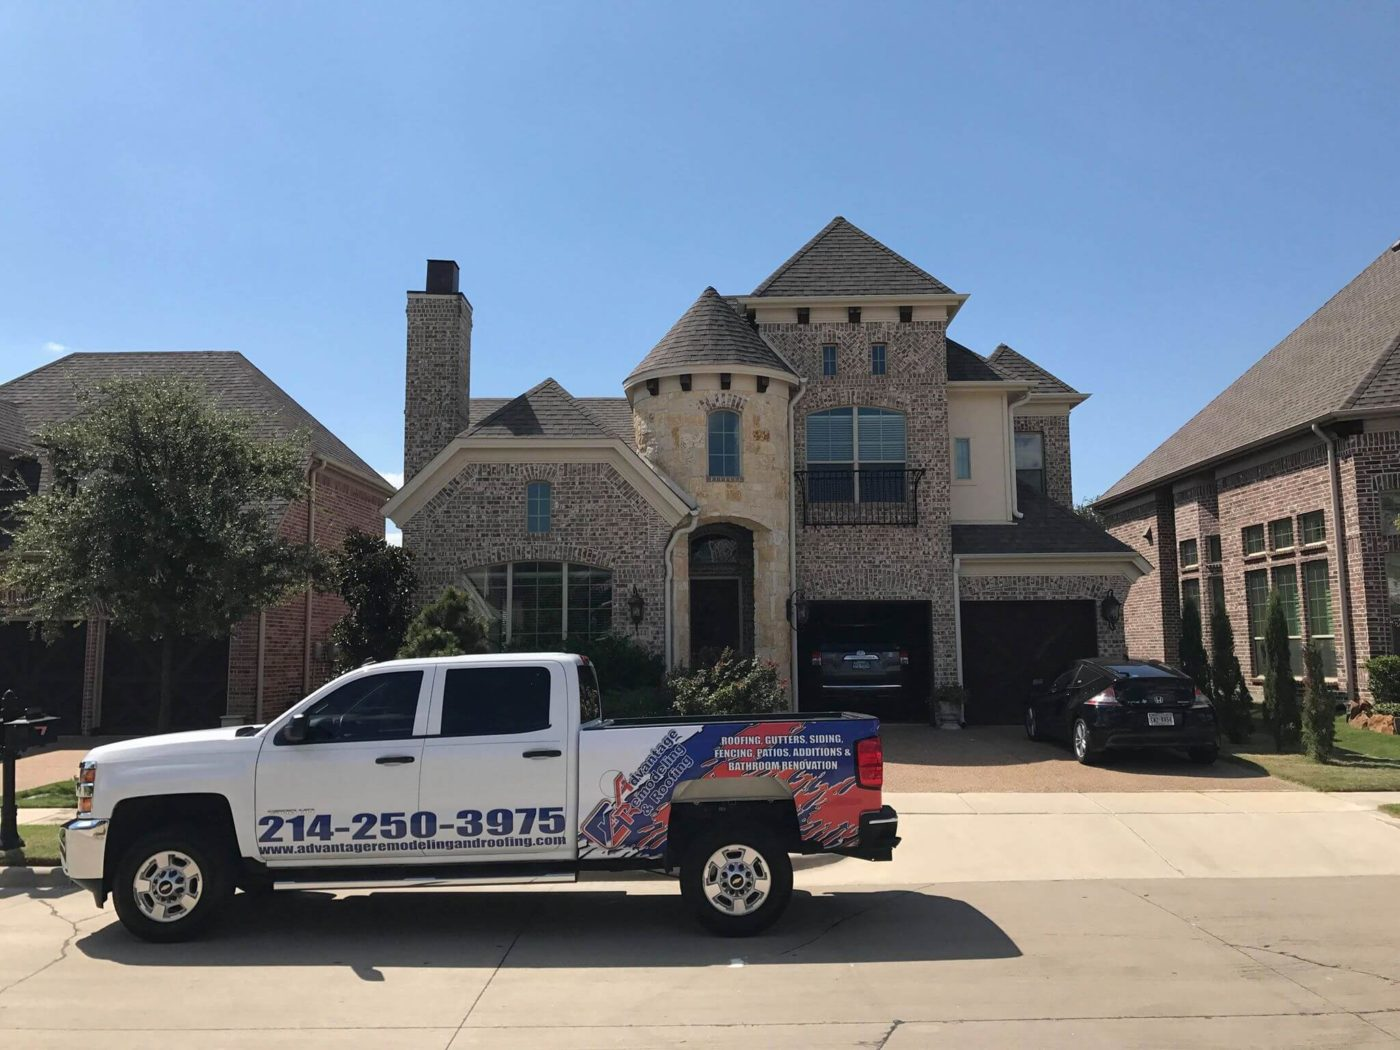 Advantage Remodeling and Roofing truck in front of clients